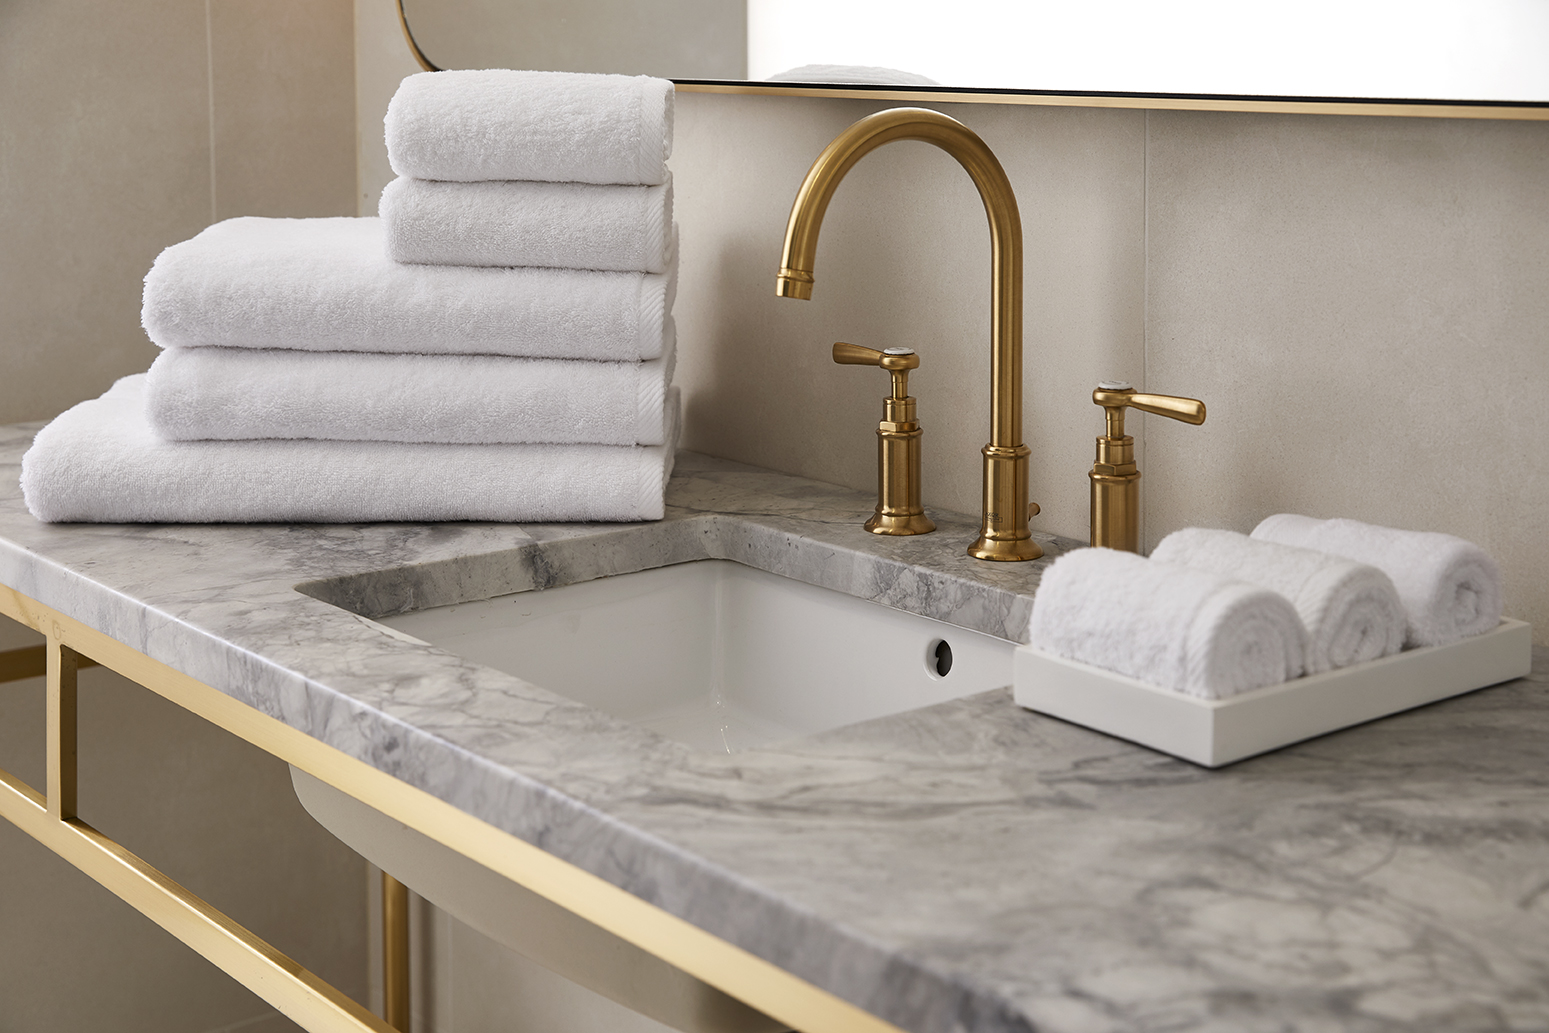 Revival_New_York_Luxury_Bath_Linens_Dream_Collection_Products_Hospitality_Hotels